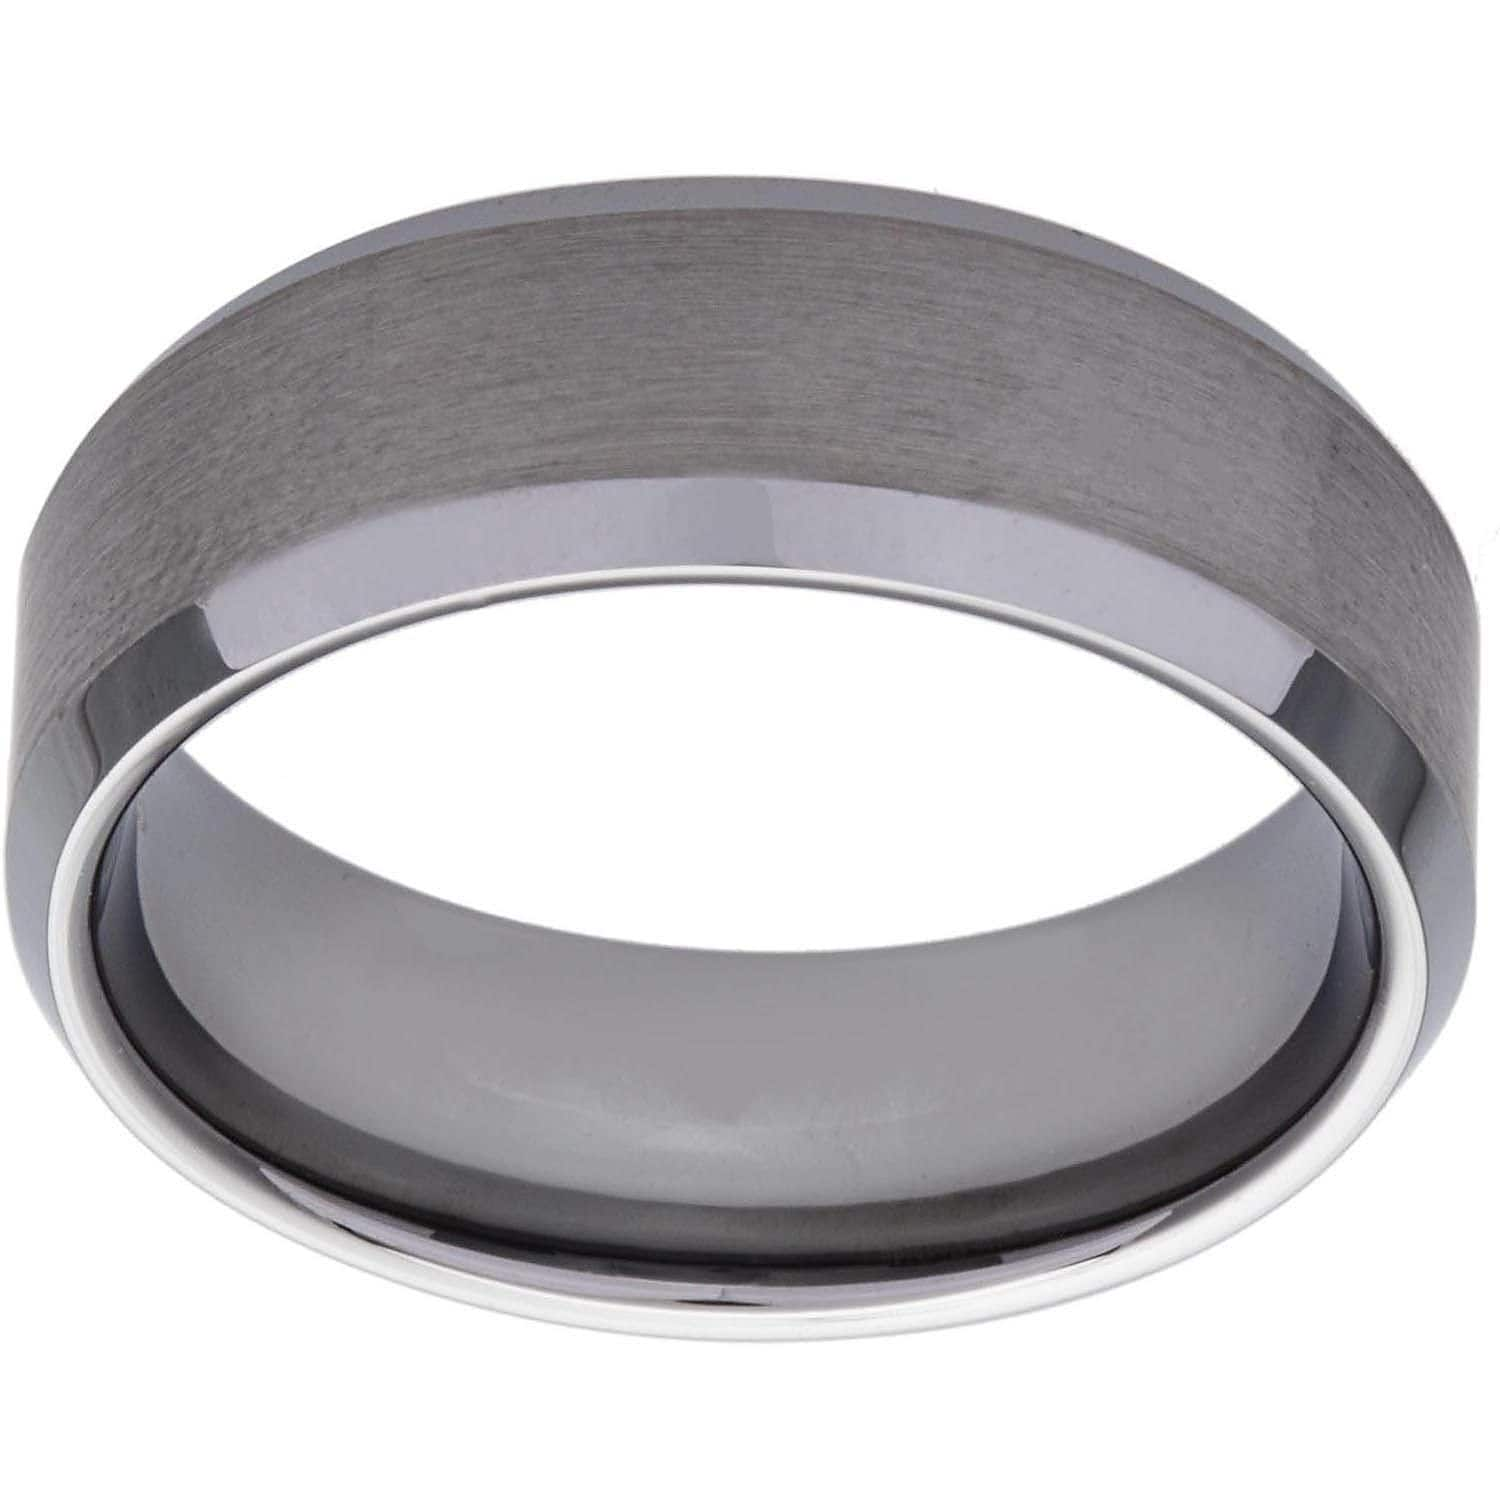 Brushed Textured Metal Tungsten Ring Jewelry Ideas for Men for Christmas